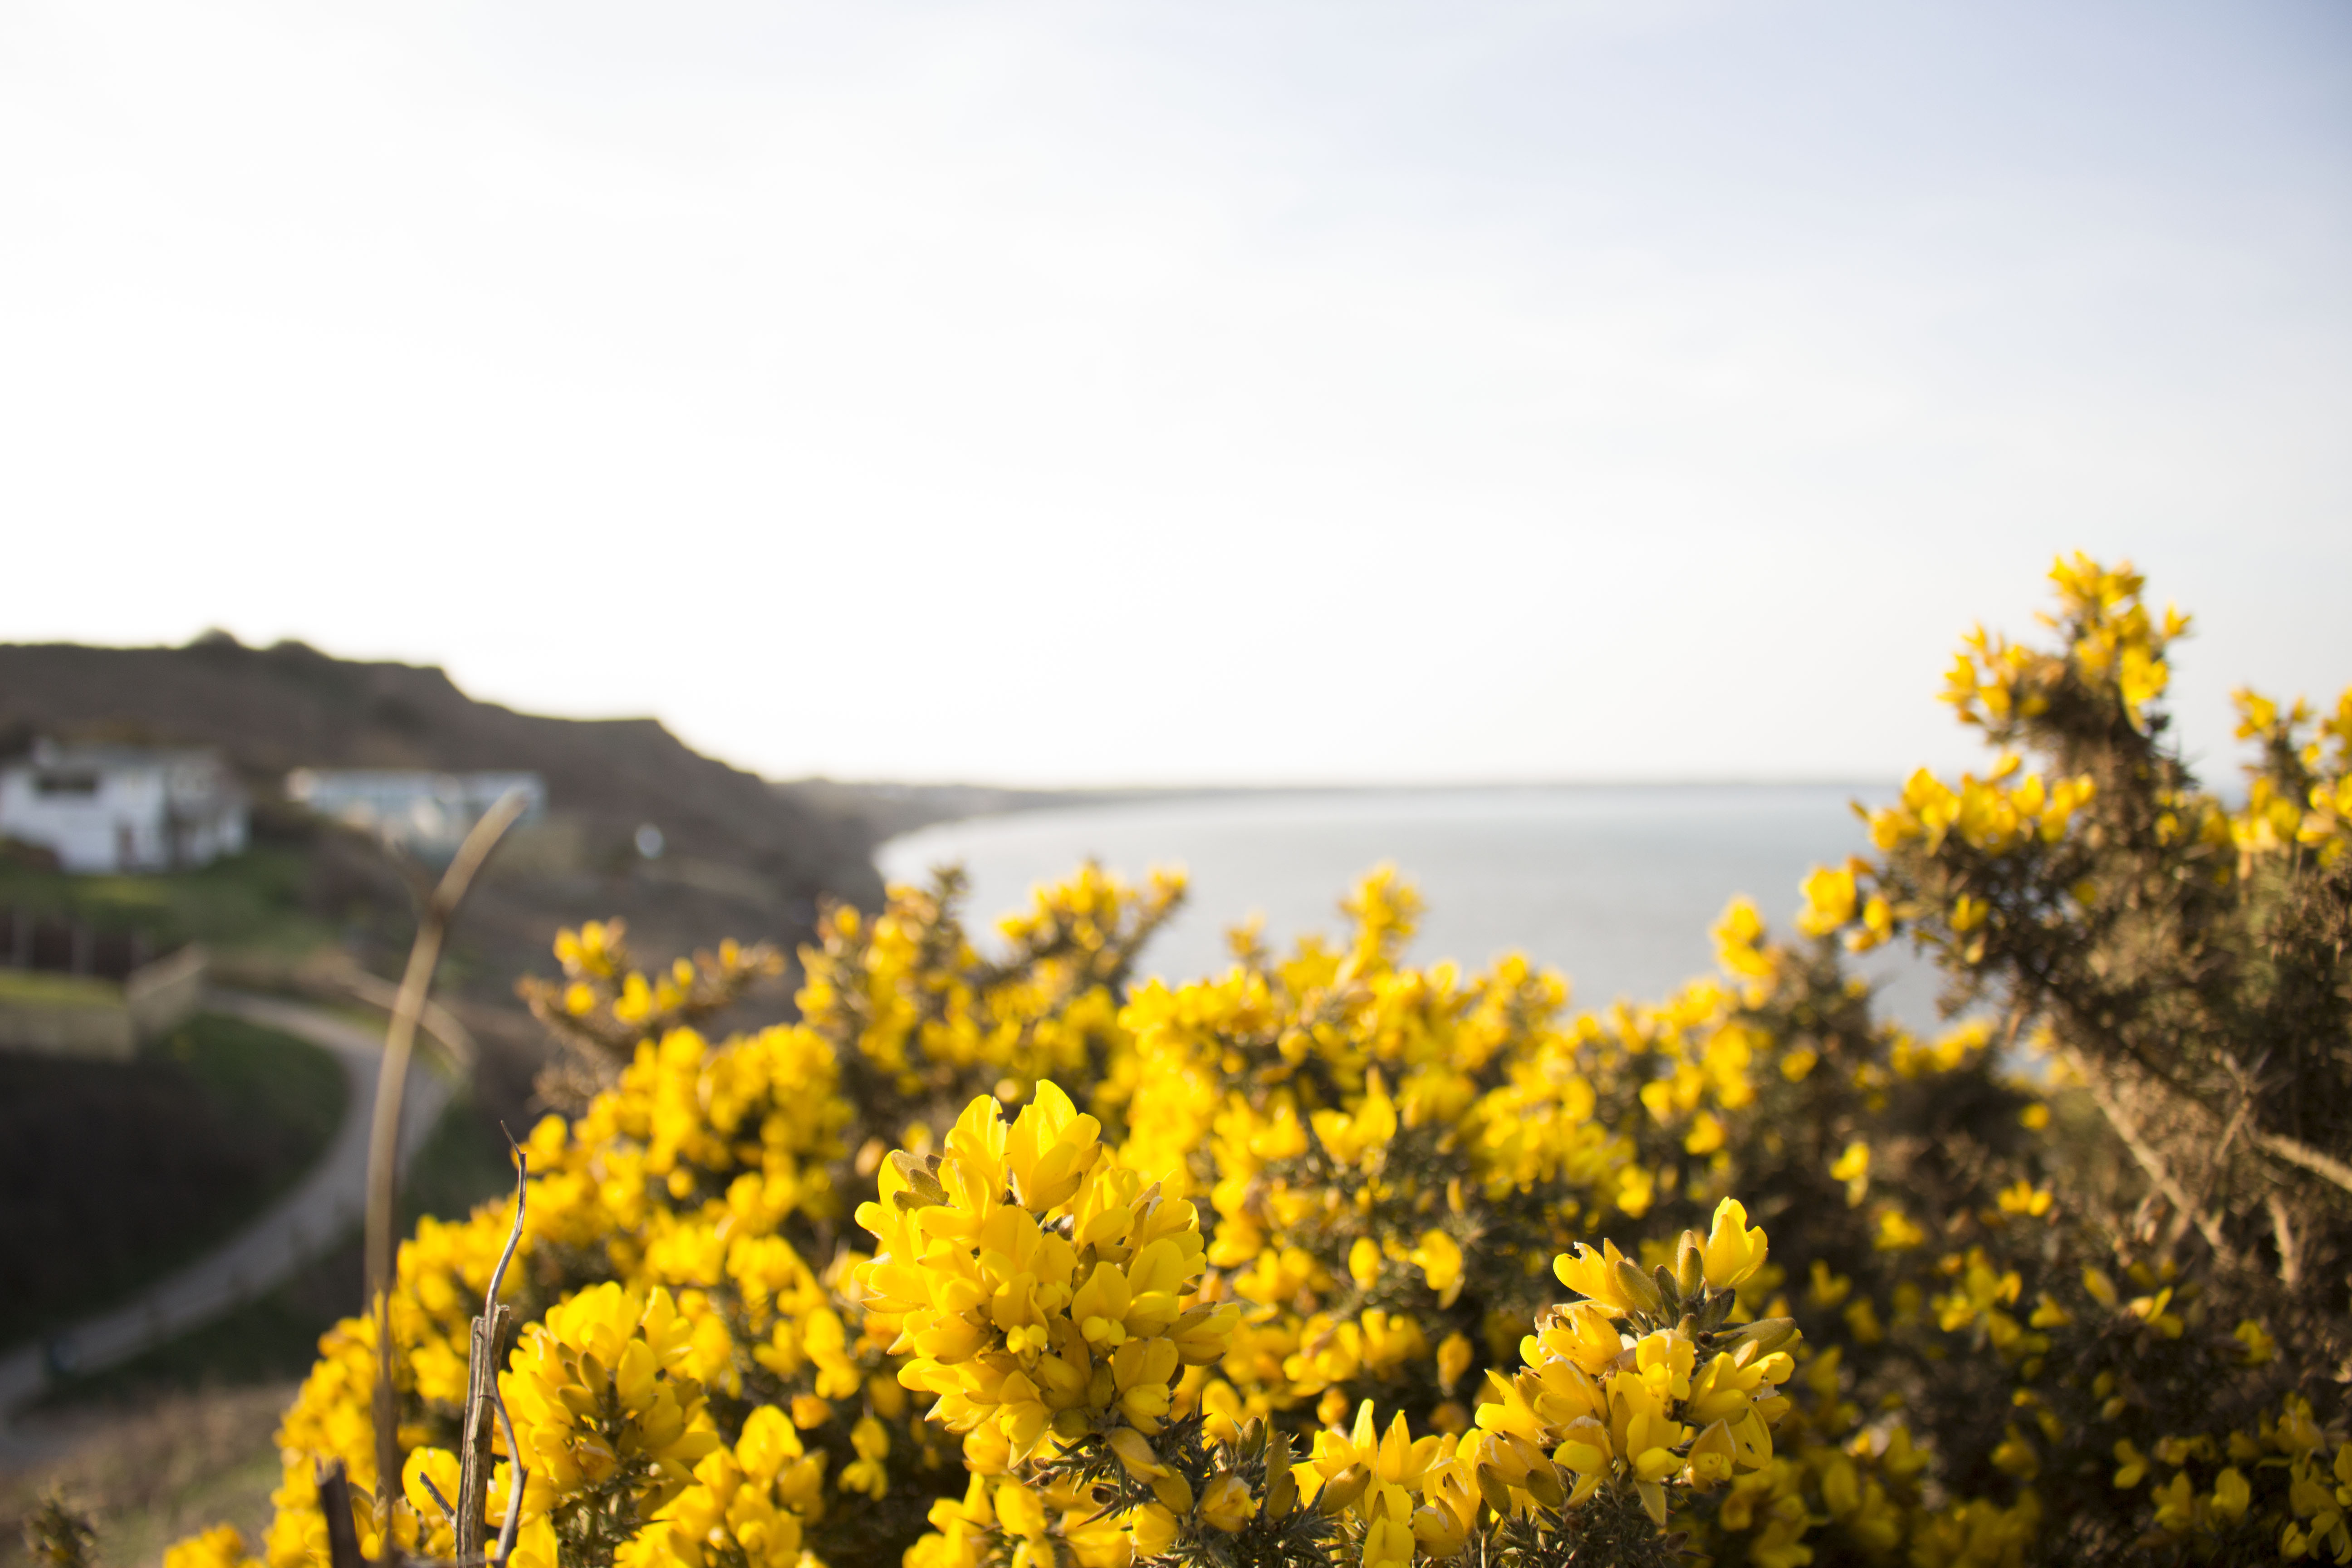 The gorse is looking good in the sunshine